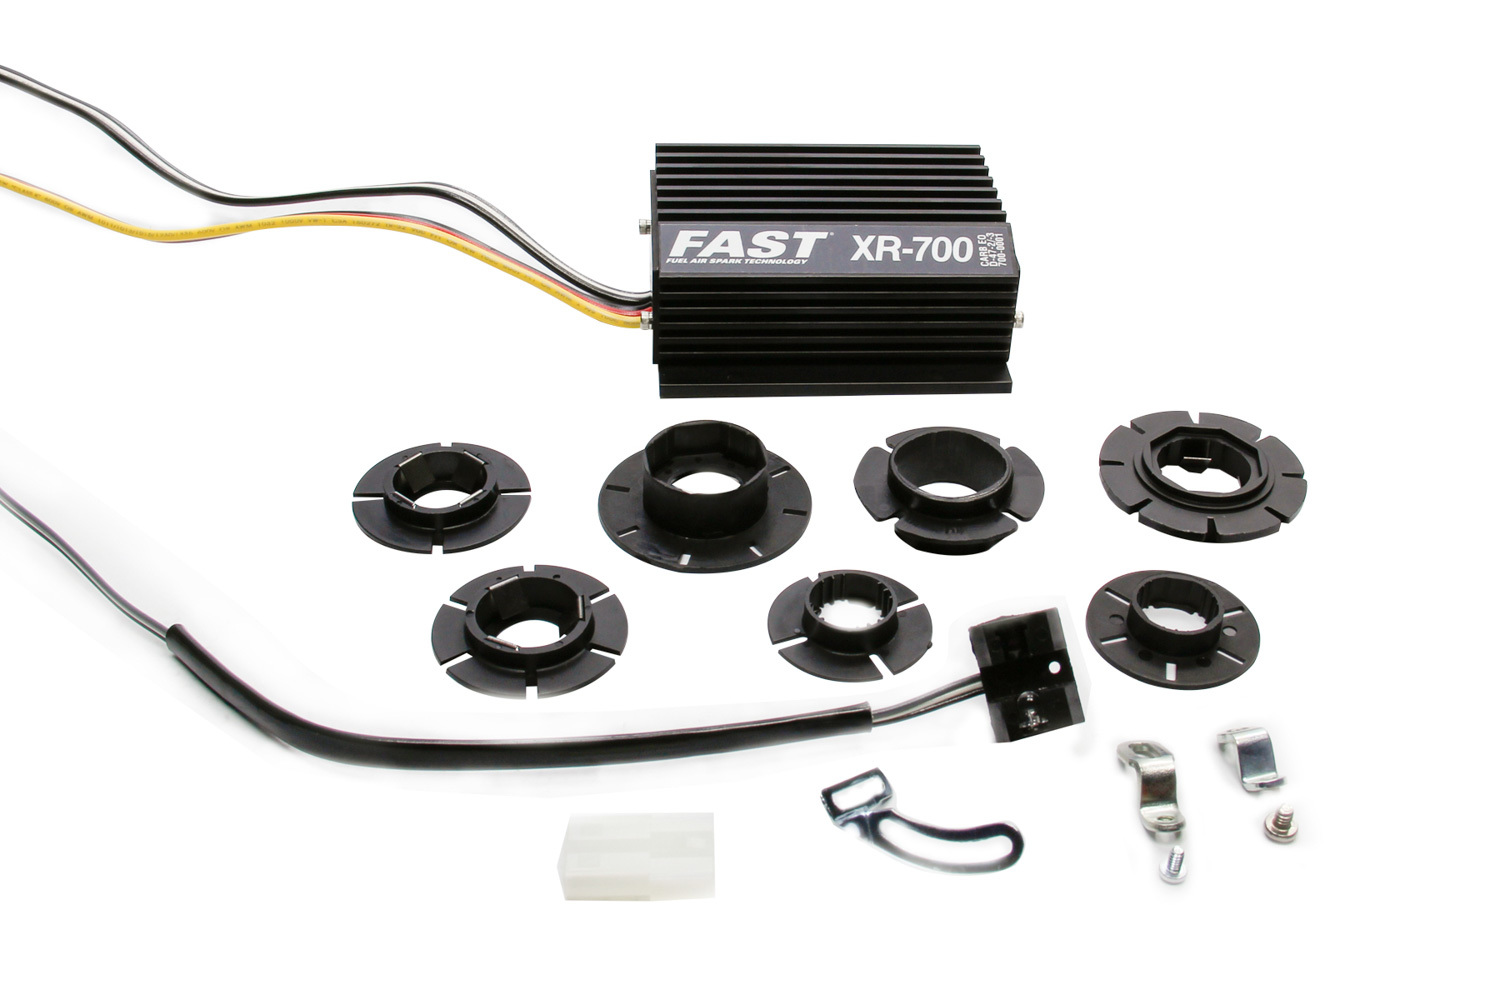 Fast Electronics 700-0231 Ignition Conversion Kit, XR700, Points to Electronic, Optical Trigger, Import/Universal 4/6/8-Cylinder, Kit